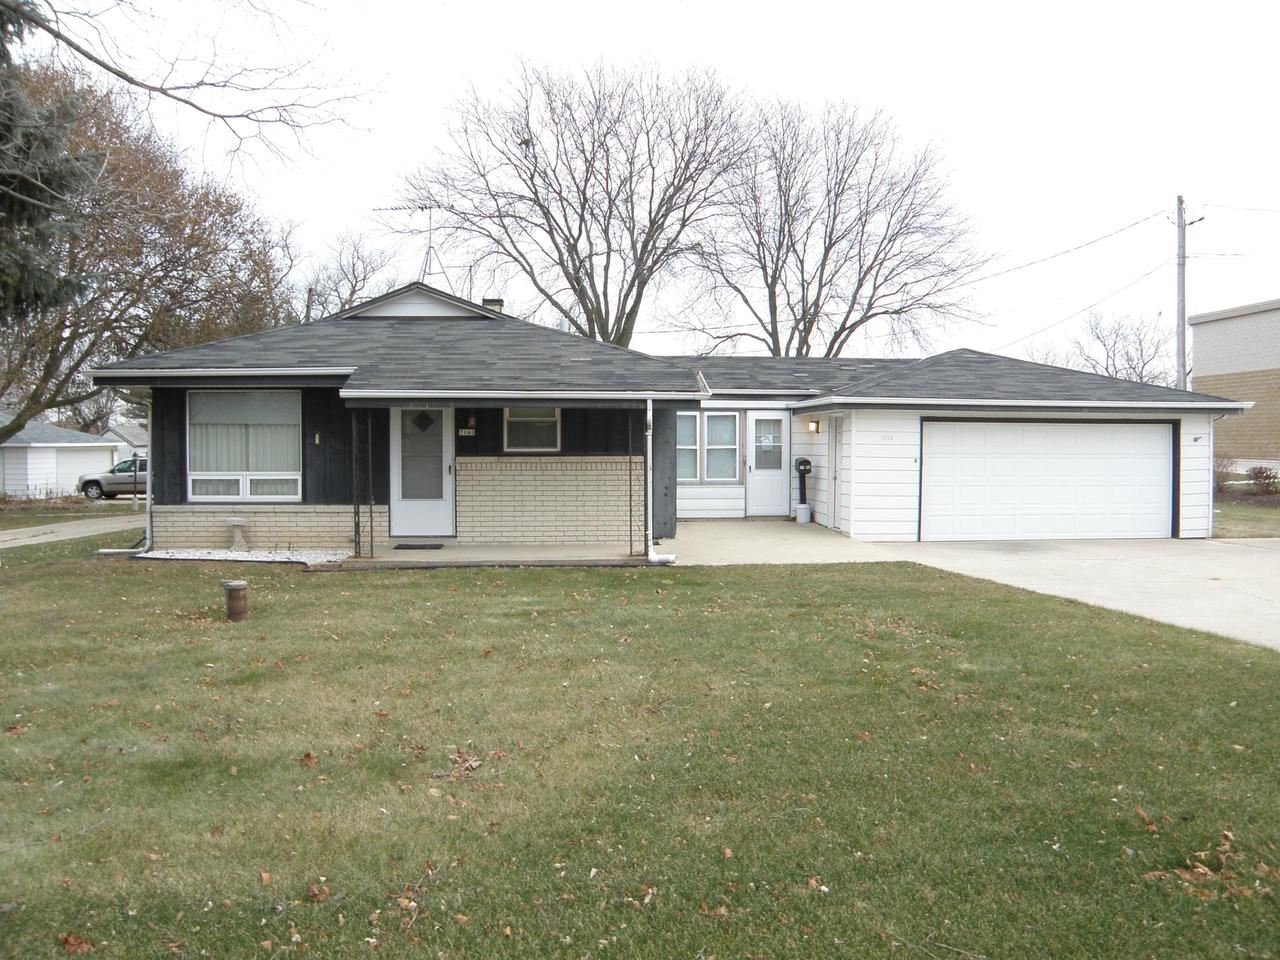 7140 S 13th St, Oak Creek, WI 53154 - MLS#: 1679832